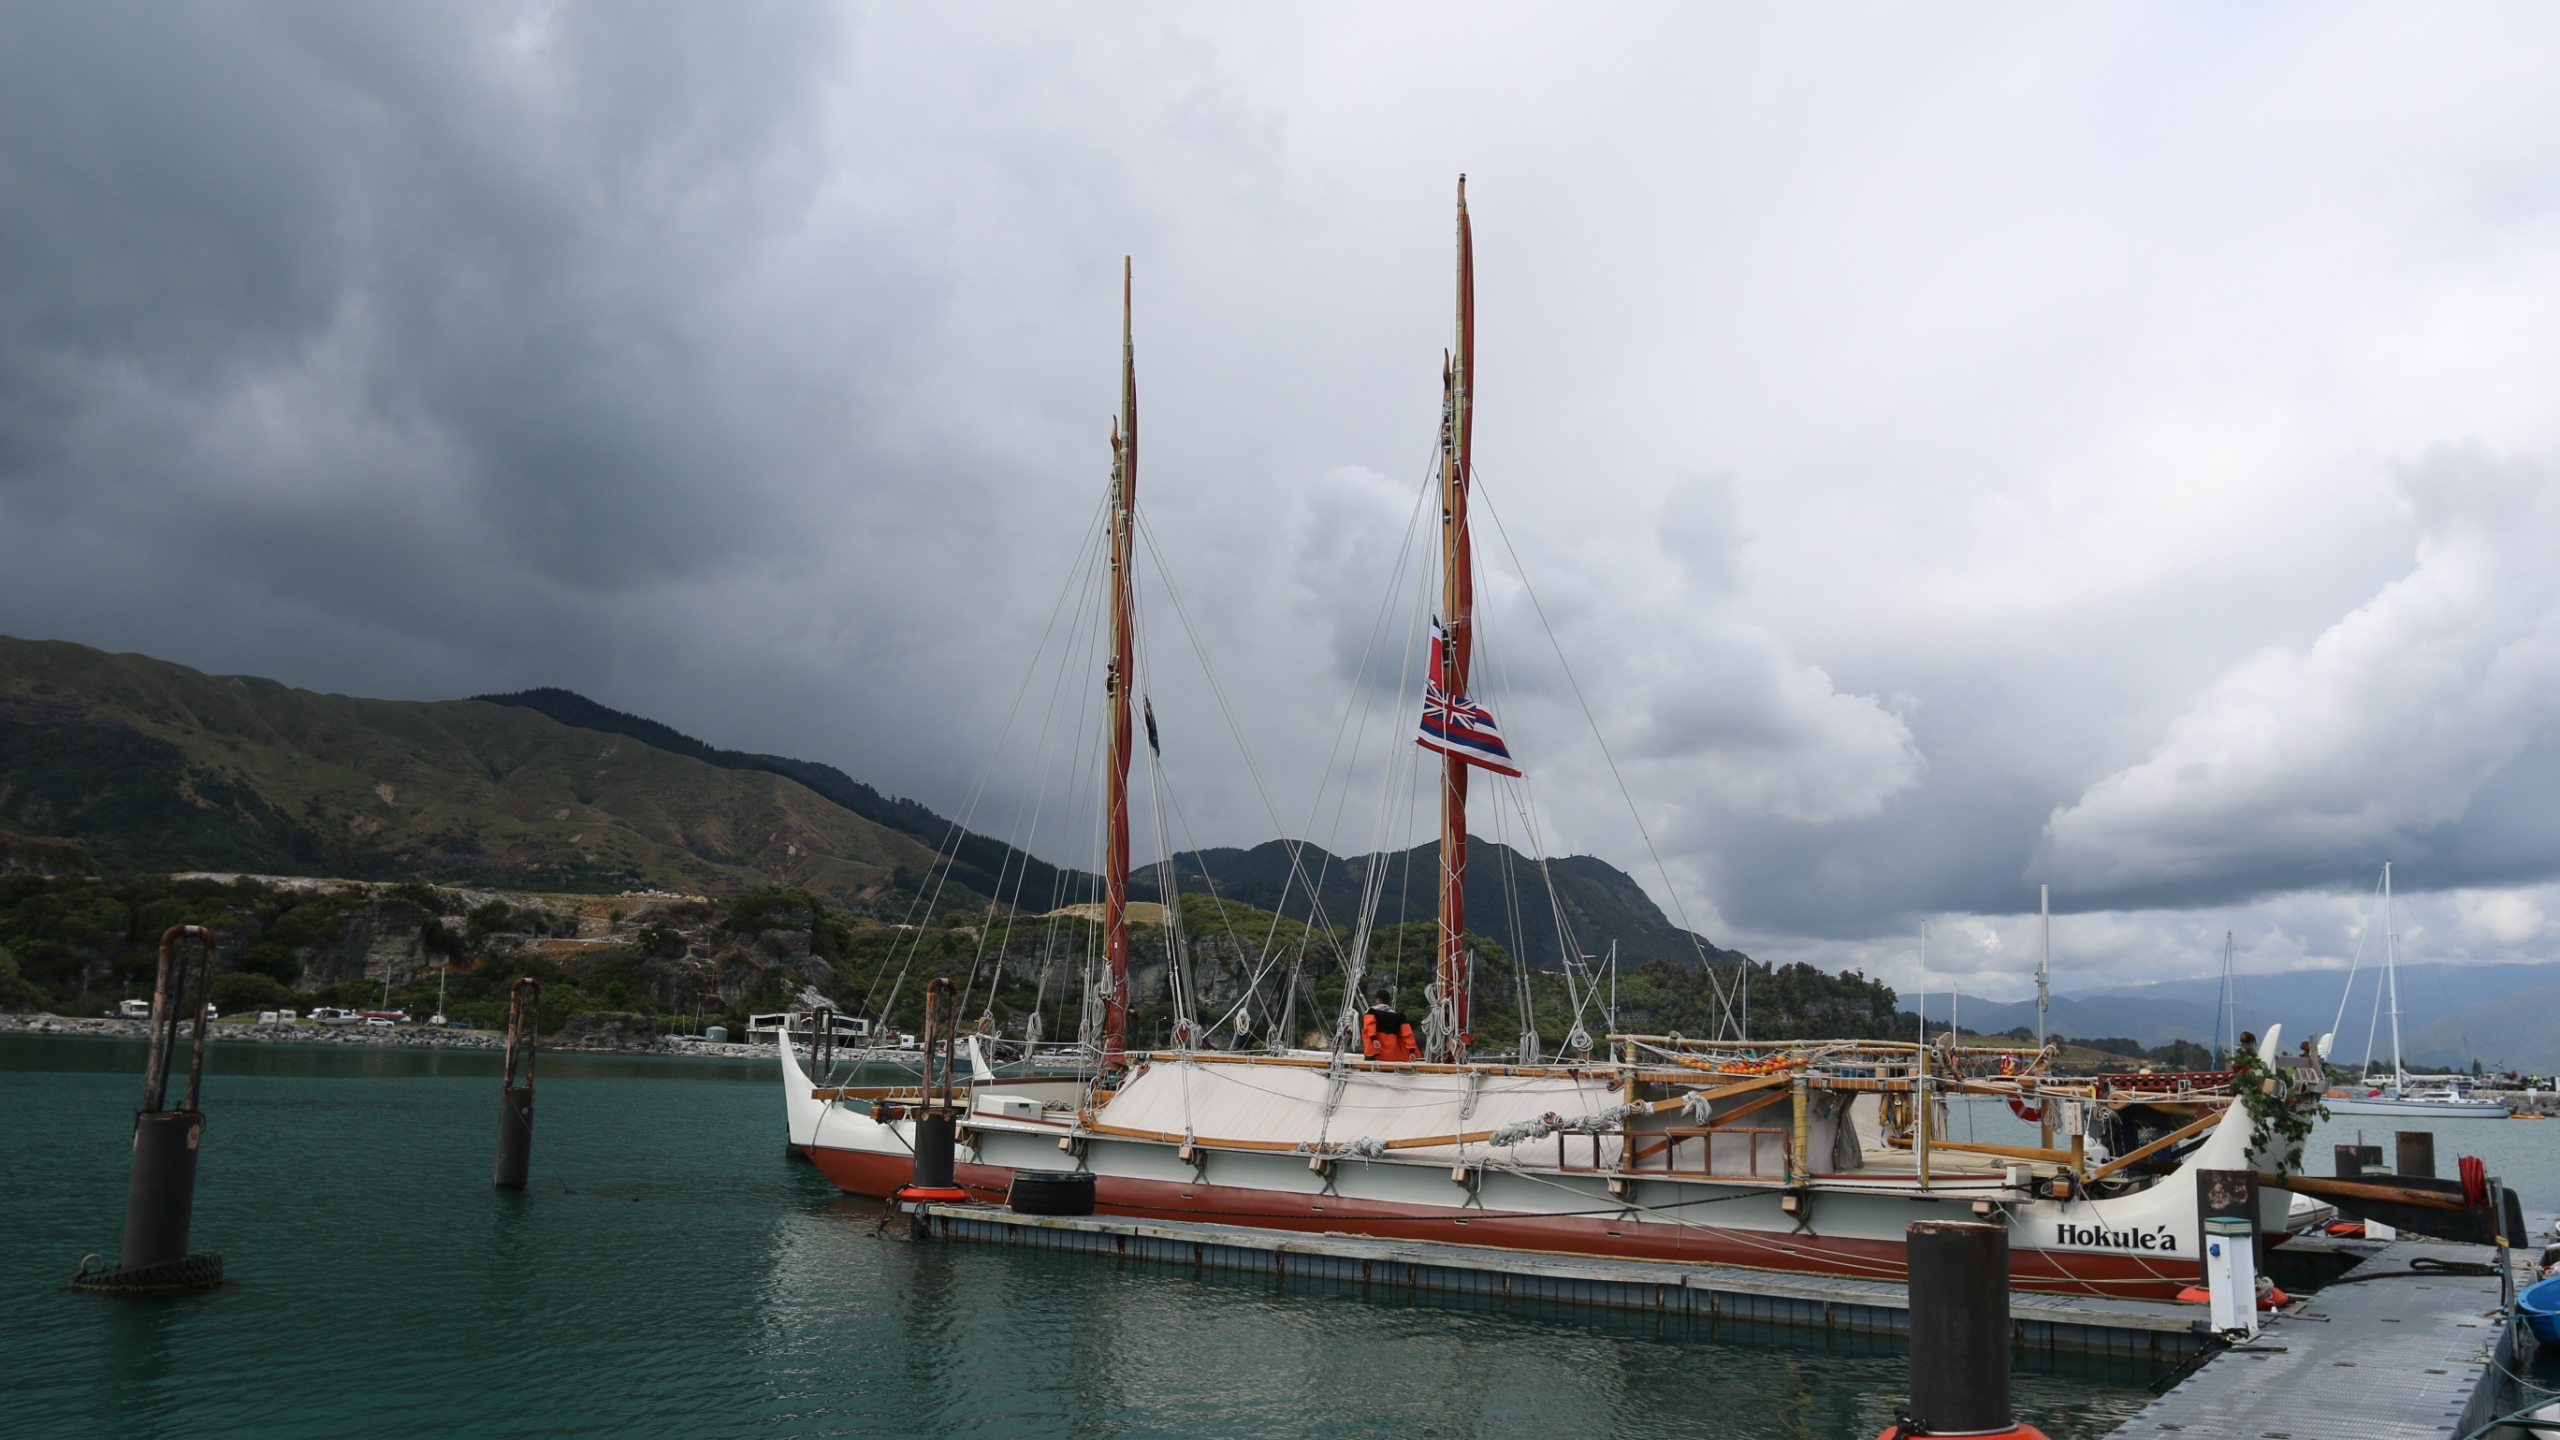 hokulea golden bay_75781